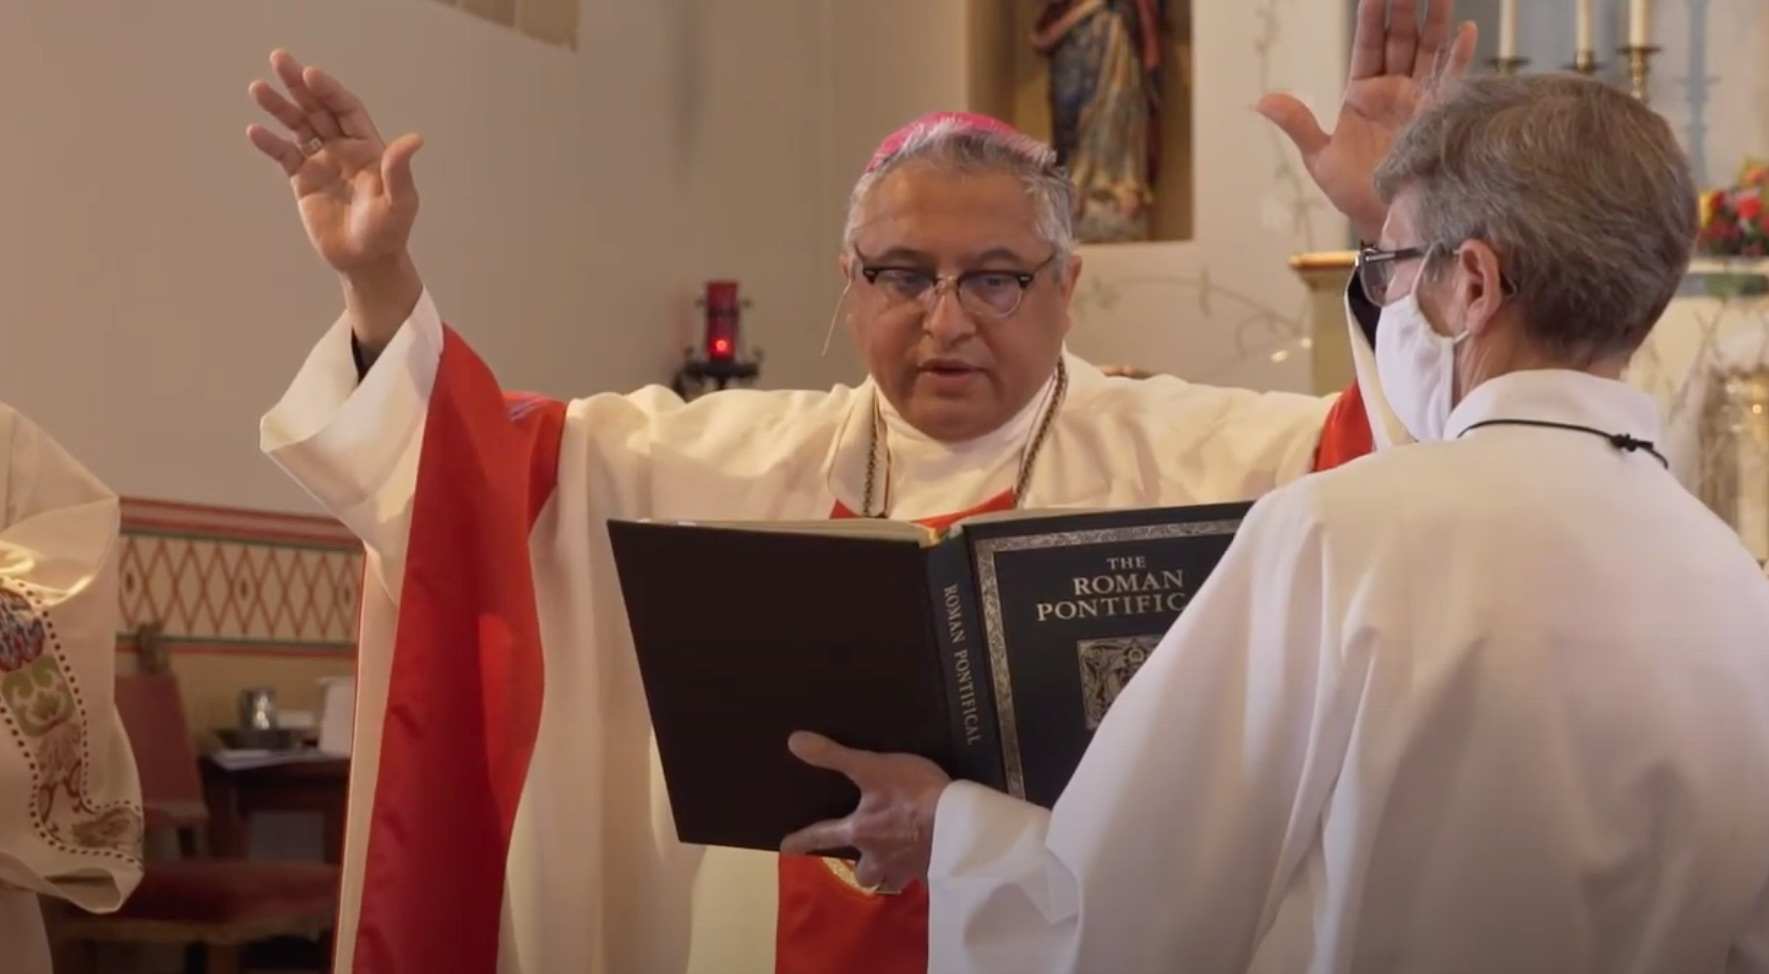 Ordination to the Order of Deacon